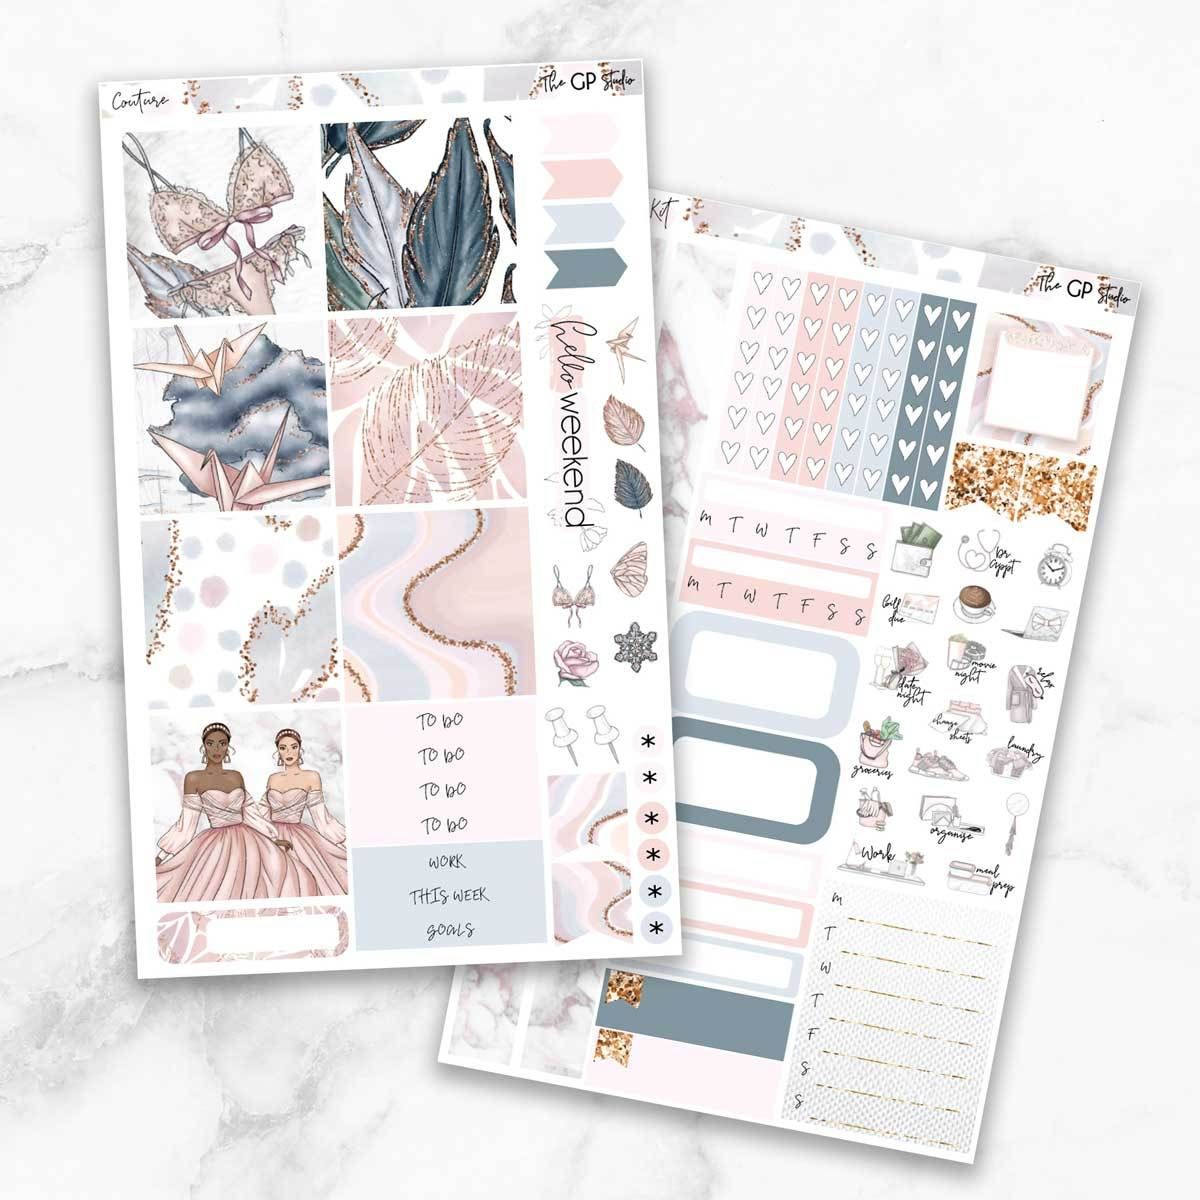 COUTURE Mini Size Planner Sticker Kit-The GP Studio